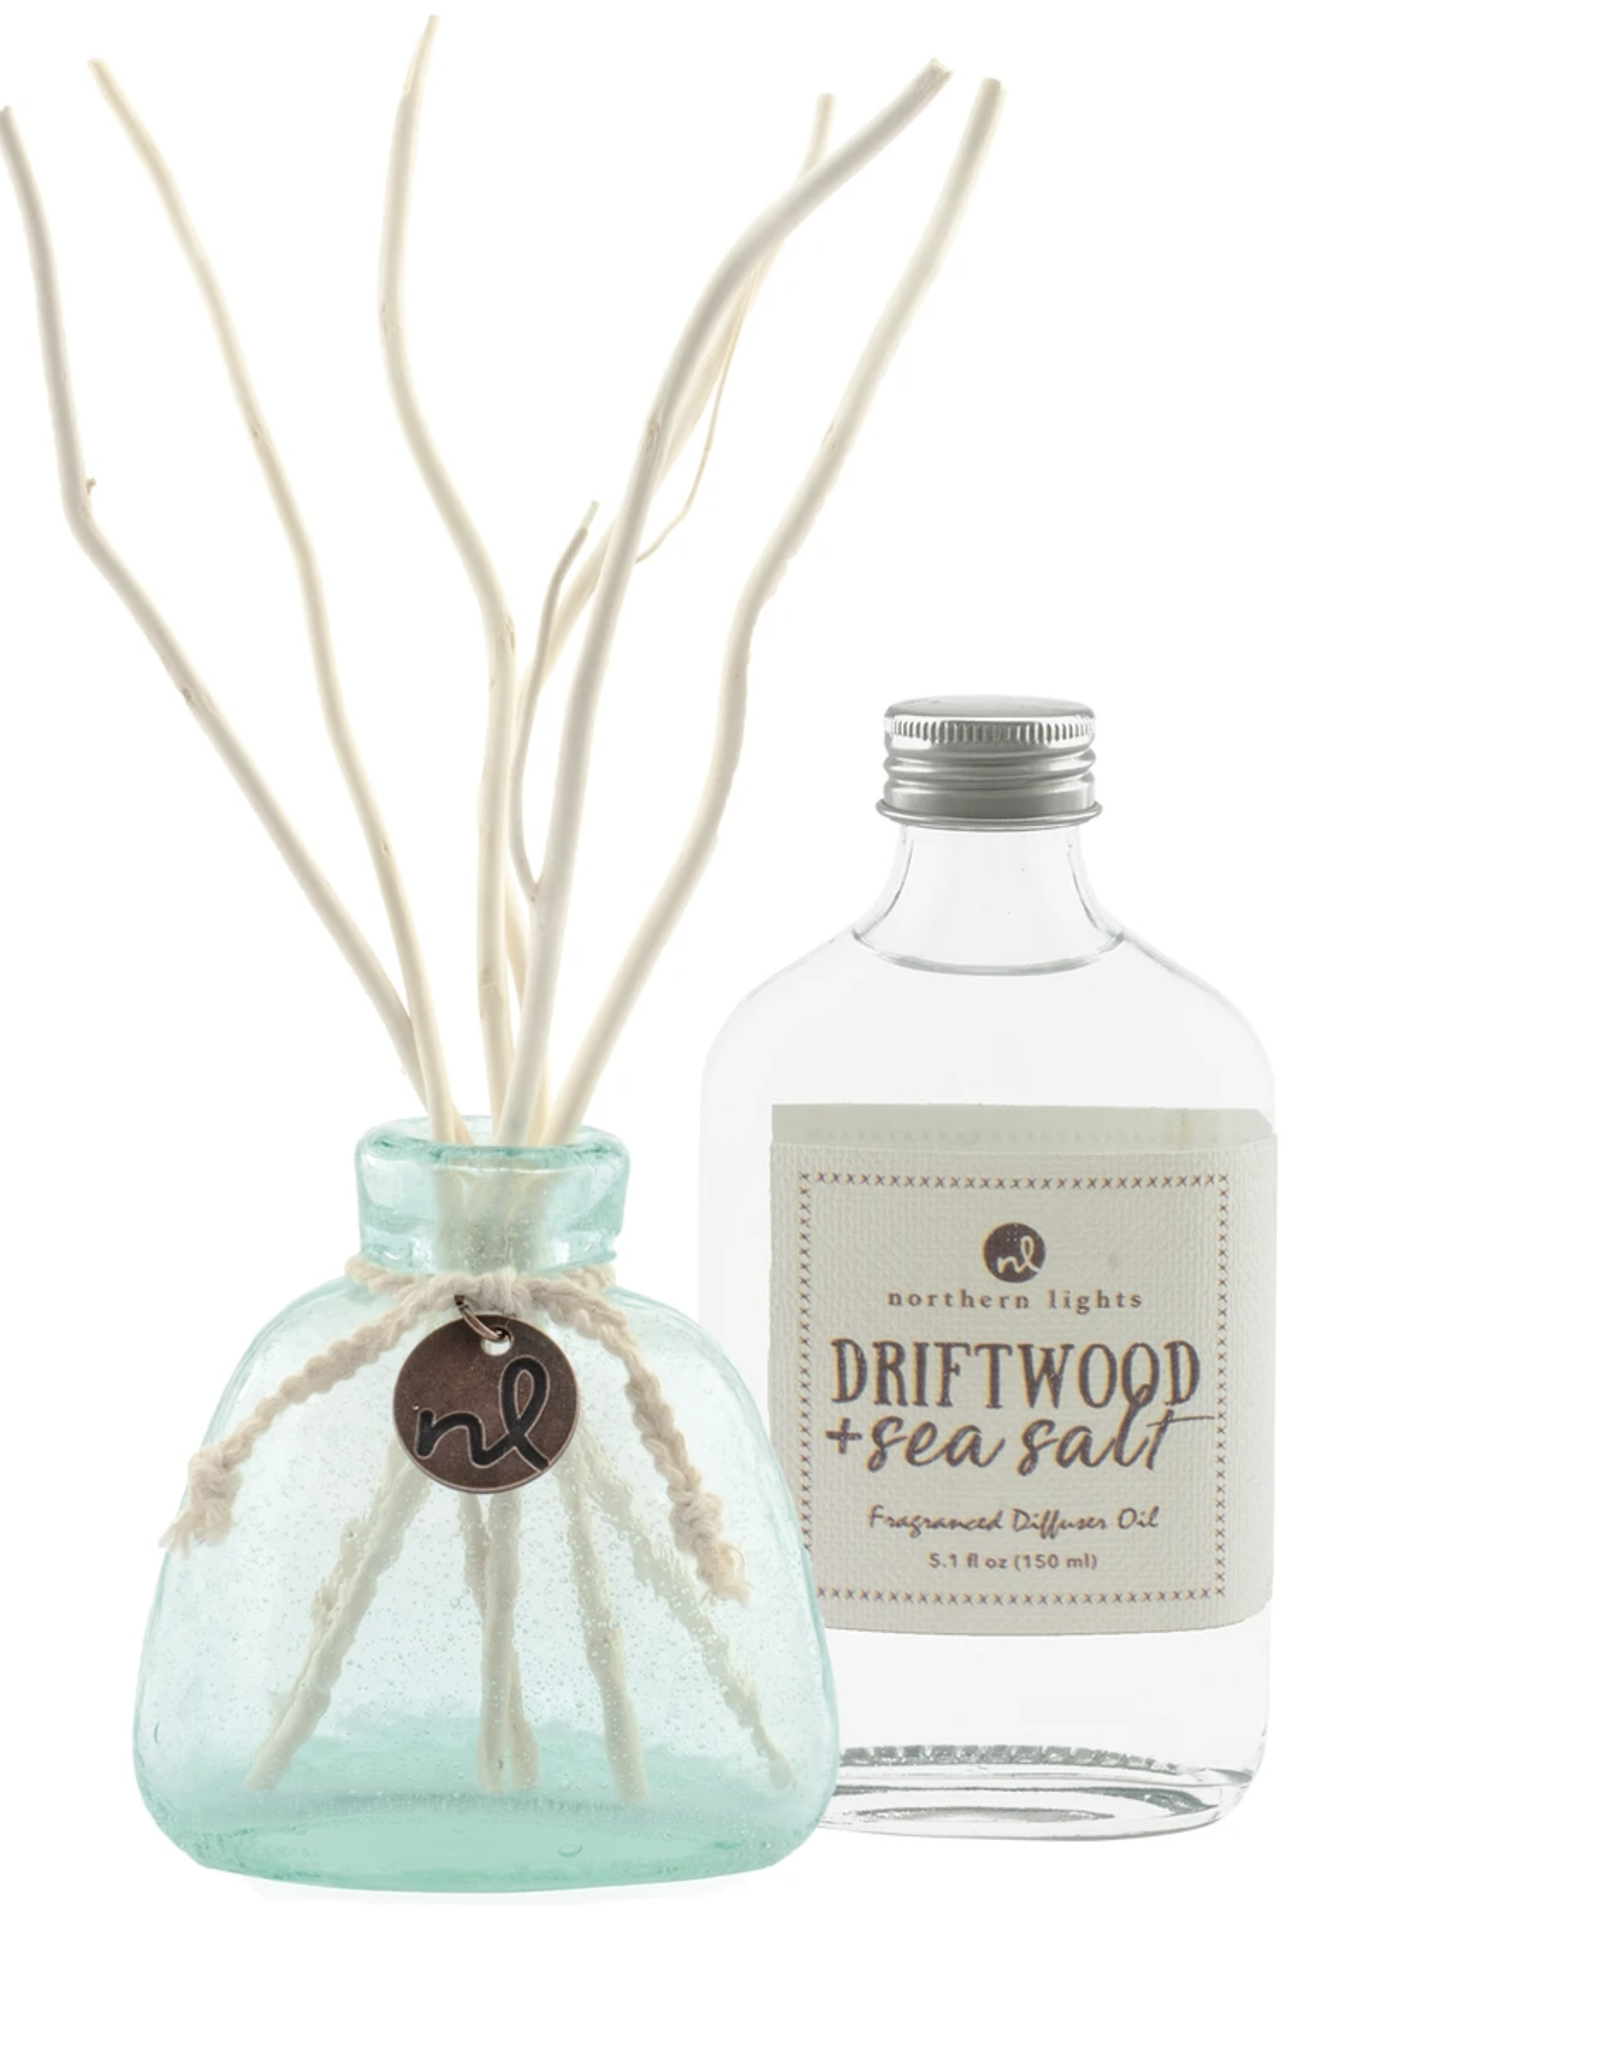 Driftwood and sea salt reed diffuser